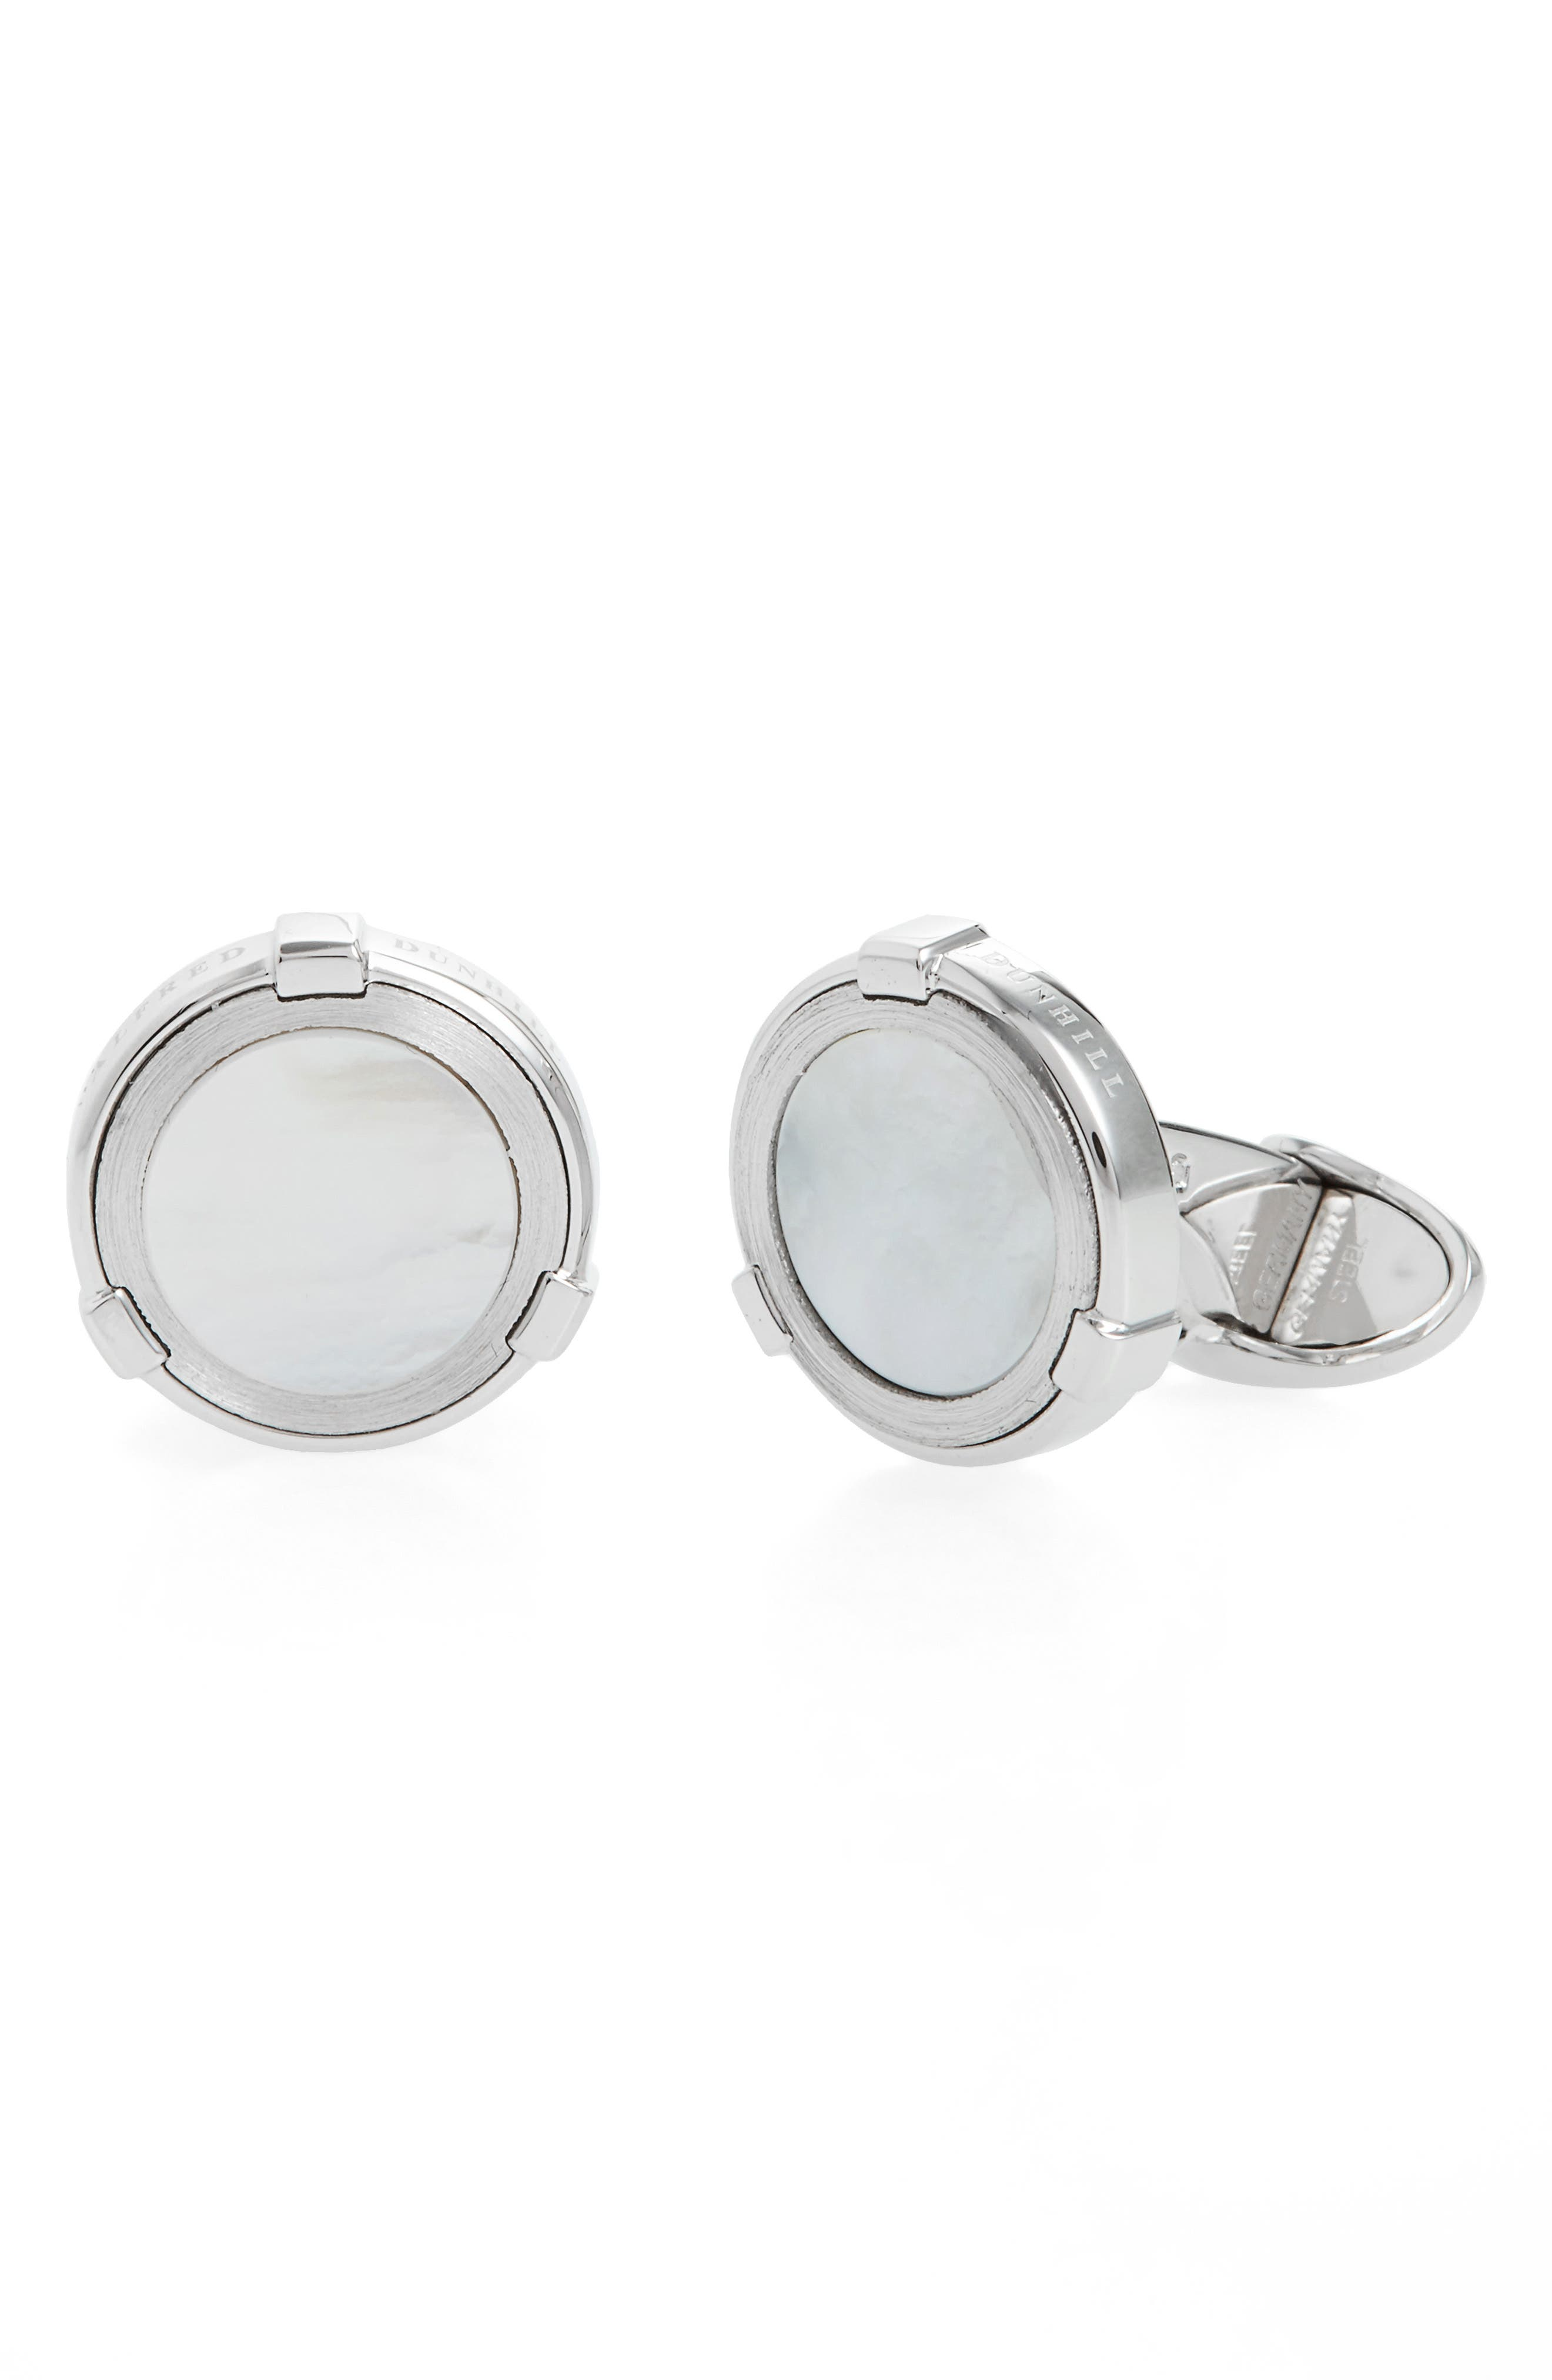 Latch Cuff Links,                             Main thumbnail 1, color,                             Mother Of Pearl/Silver